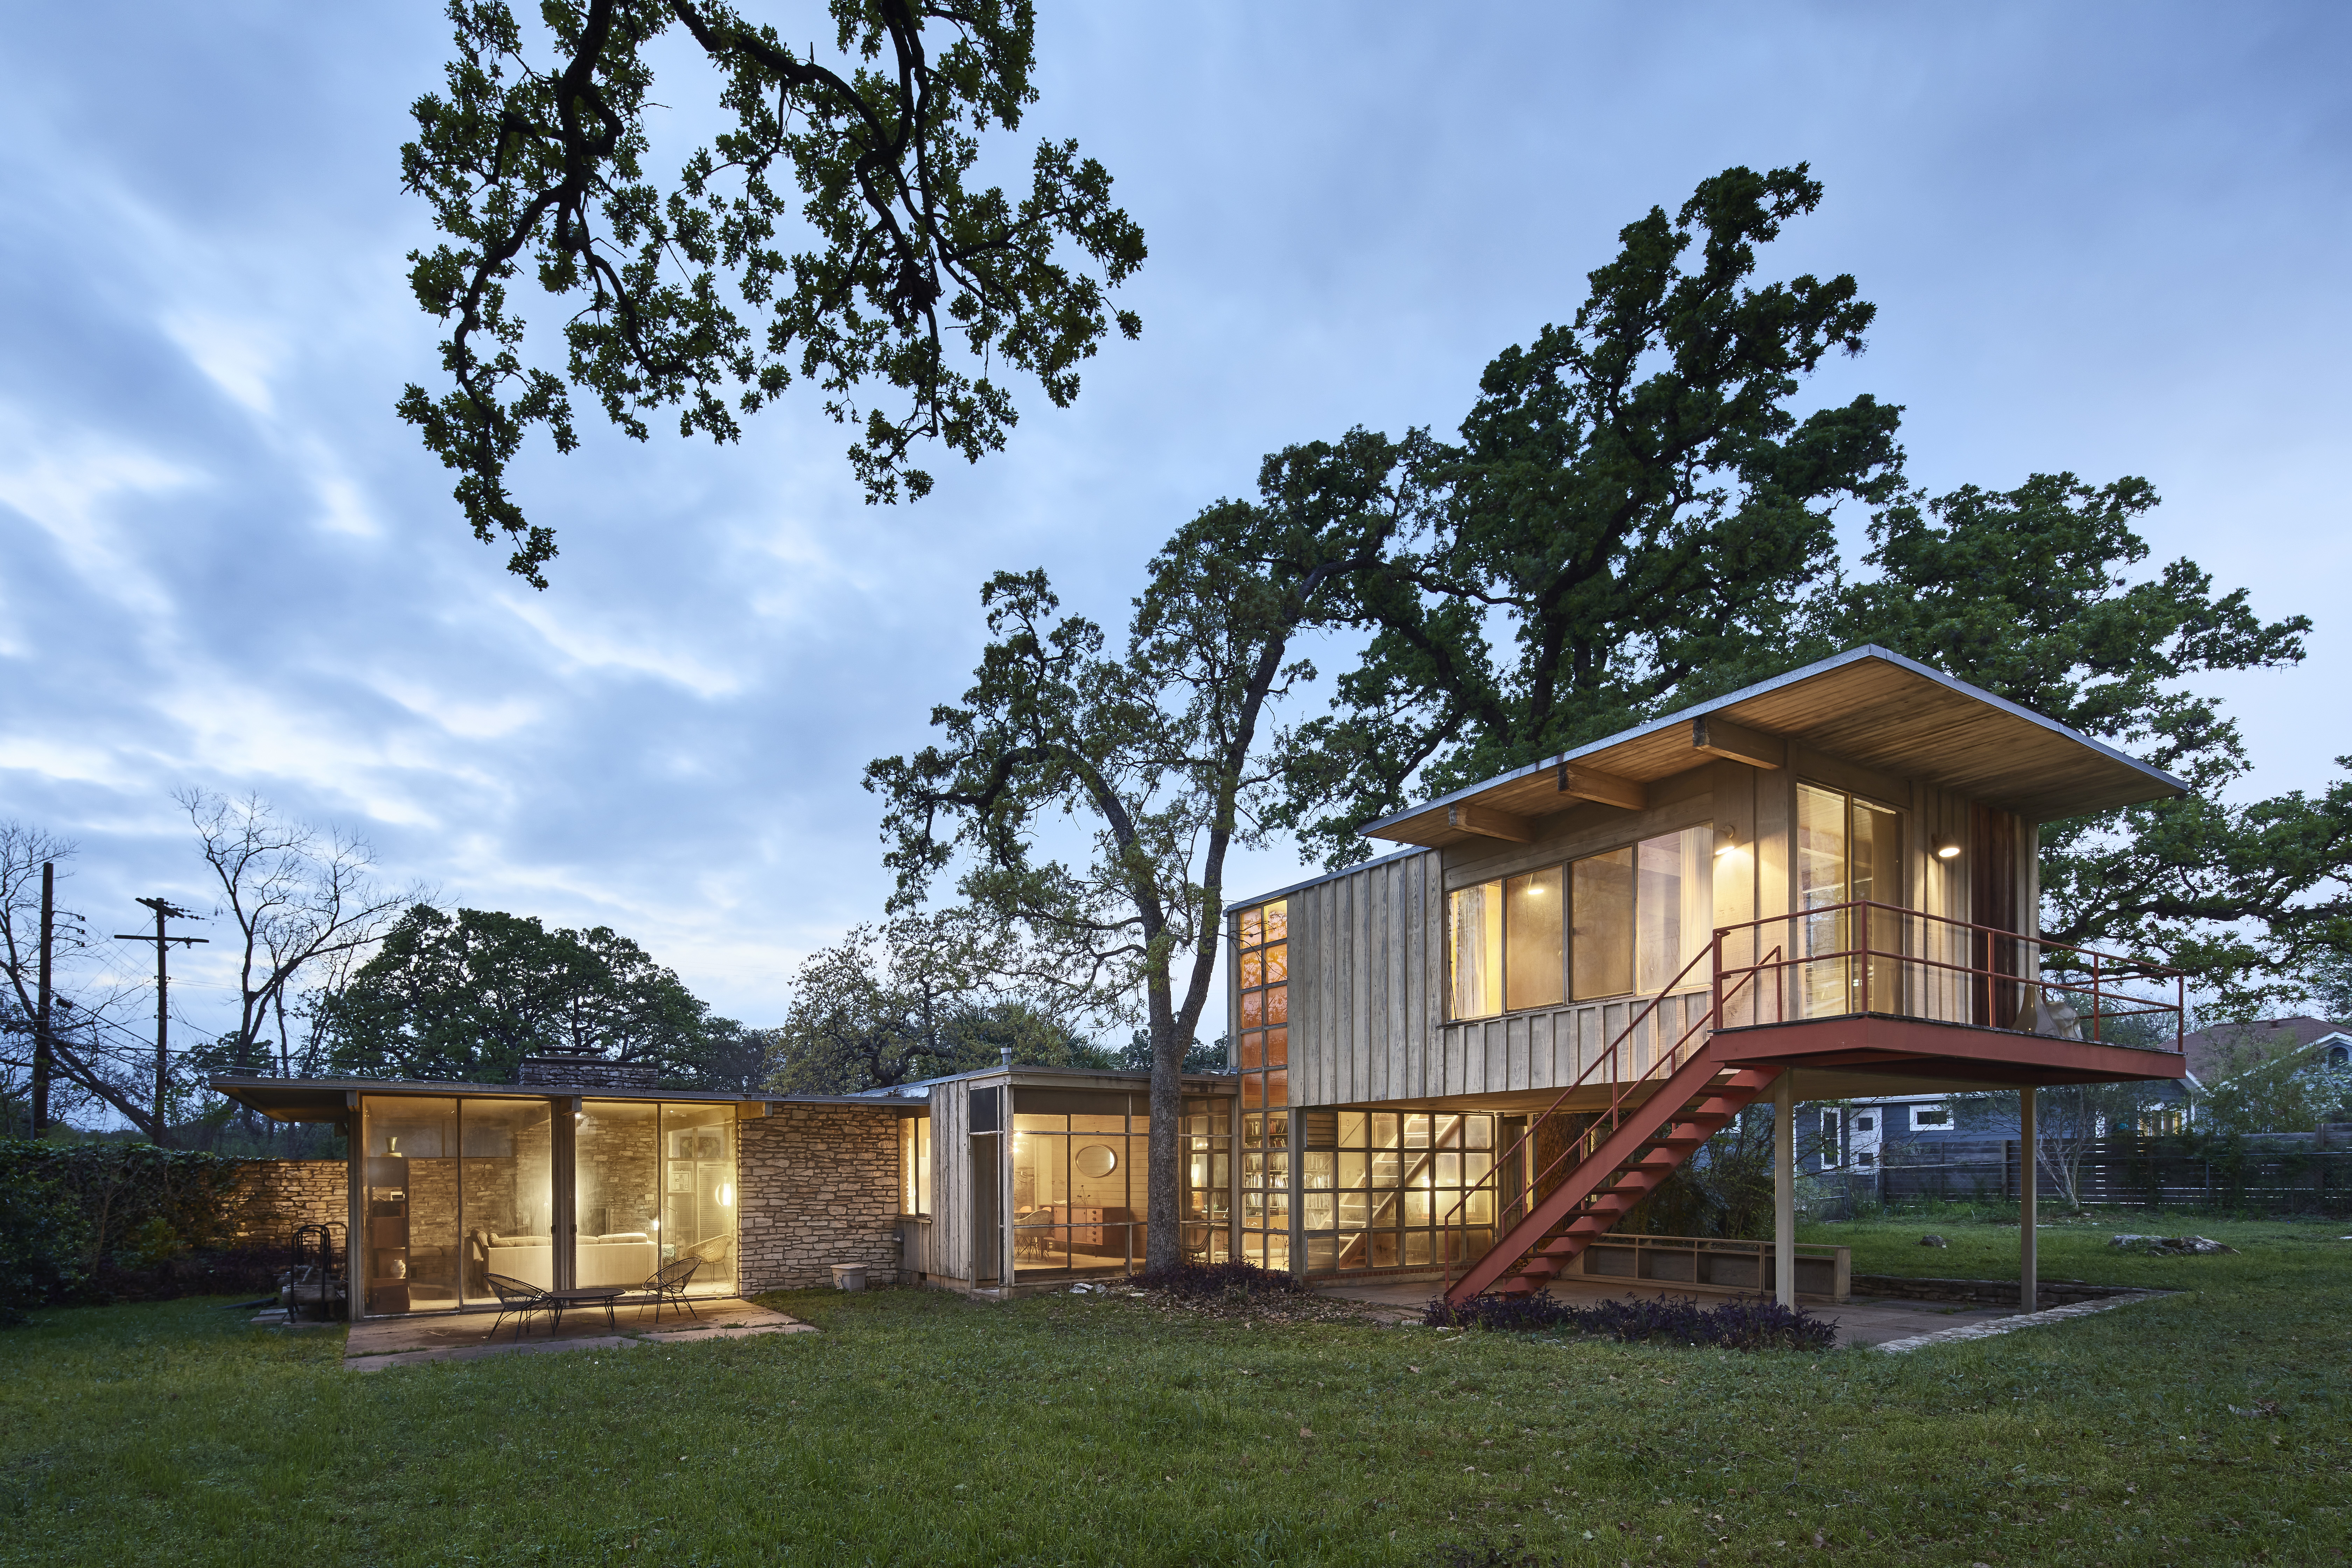 Rectilinear house with an elevated second story with a balcony.